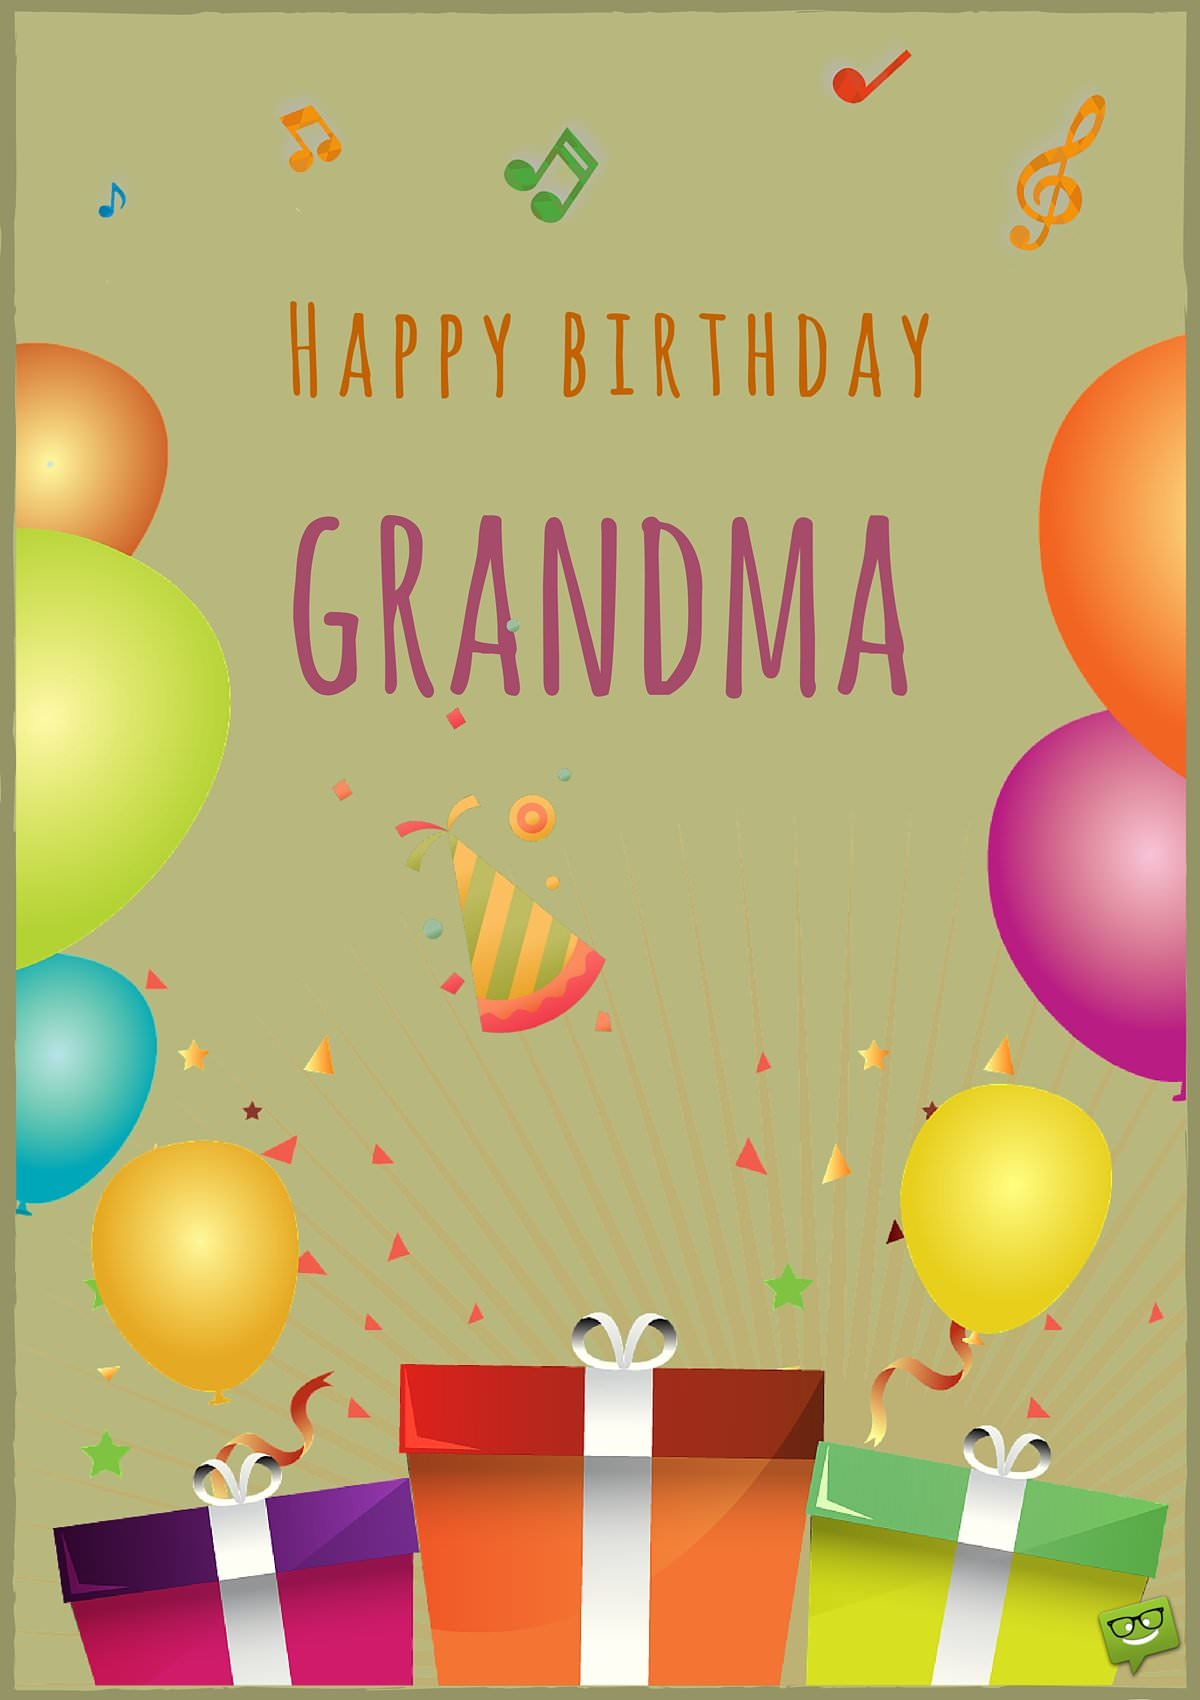 Happy Birthday card for Grandma With image of balloons and – Birthday Card for Grandma